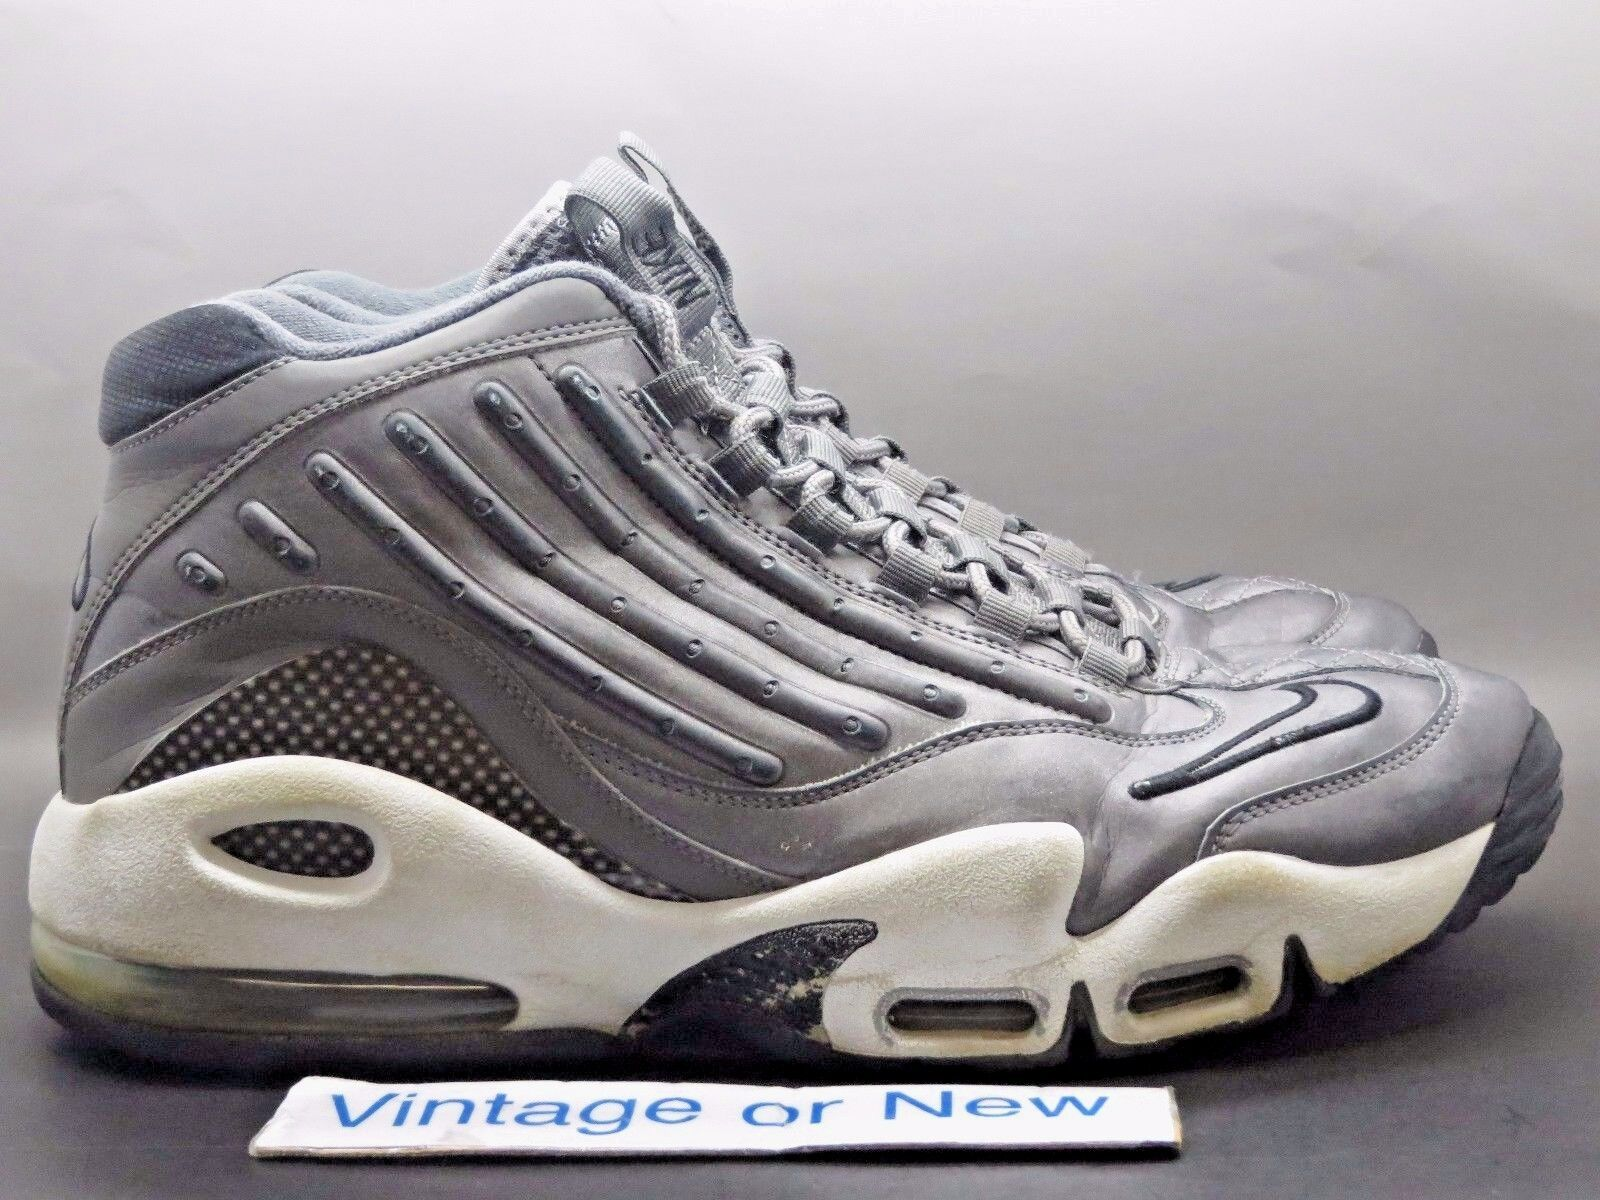 Nike Air Griffey Max II 2 3M Metallic Dark Grey White 2011 sz 13